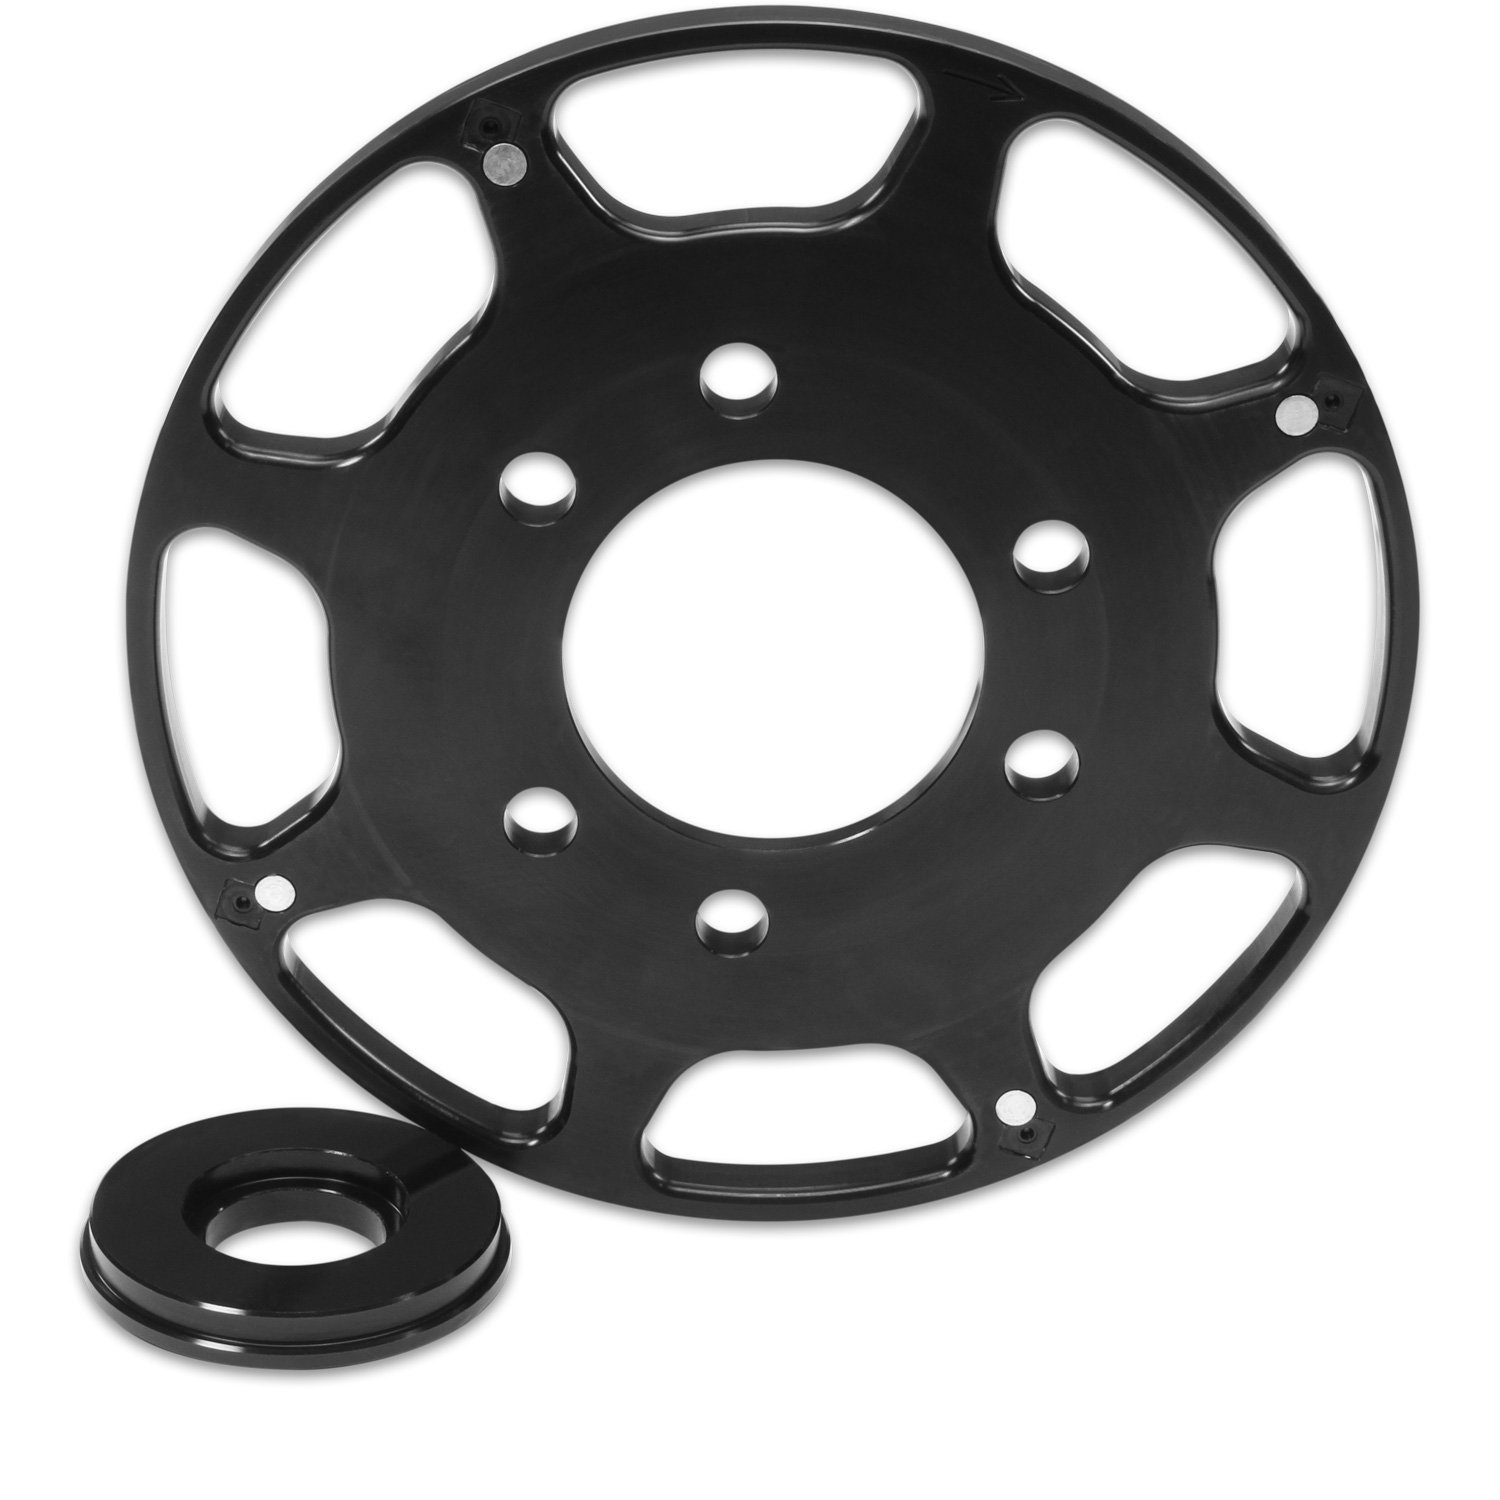 86113 - Small Block Chevy Replacement Trigger Wheel, Flying Magnet- Black Image